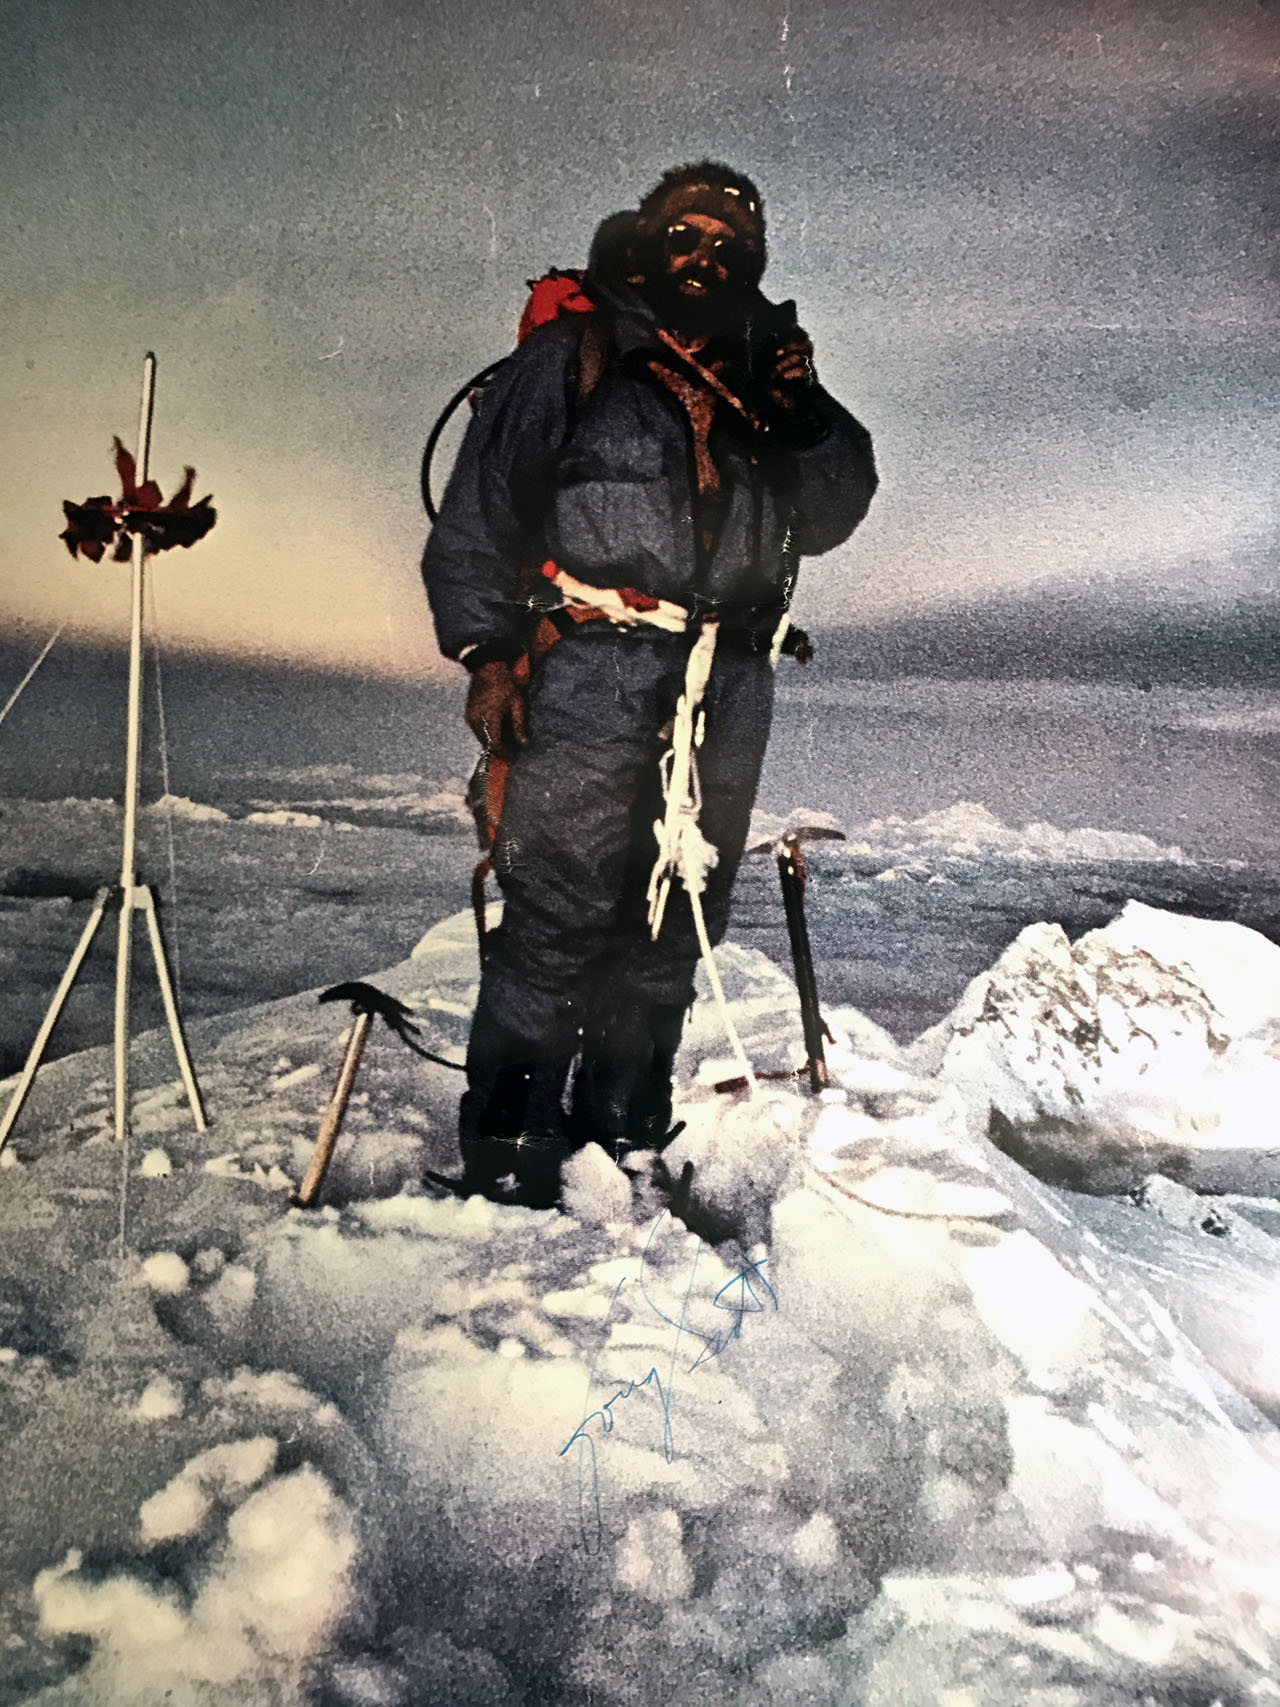 During one of Doug Scott's lectures at Sawtooth Mountaineering Bob Boyles secured a signed copy of the famous climber's posters